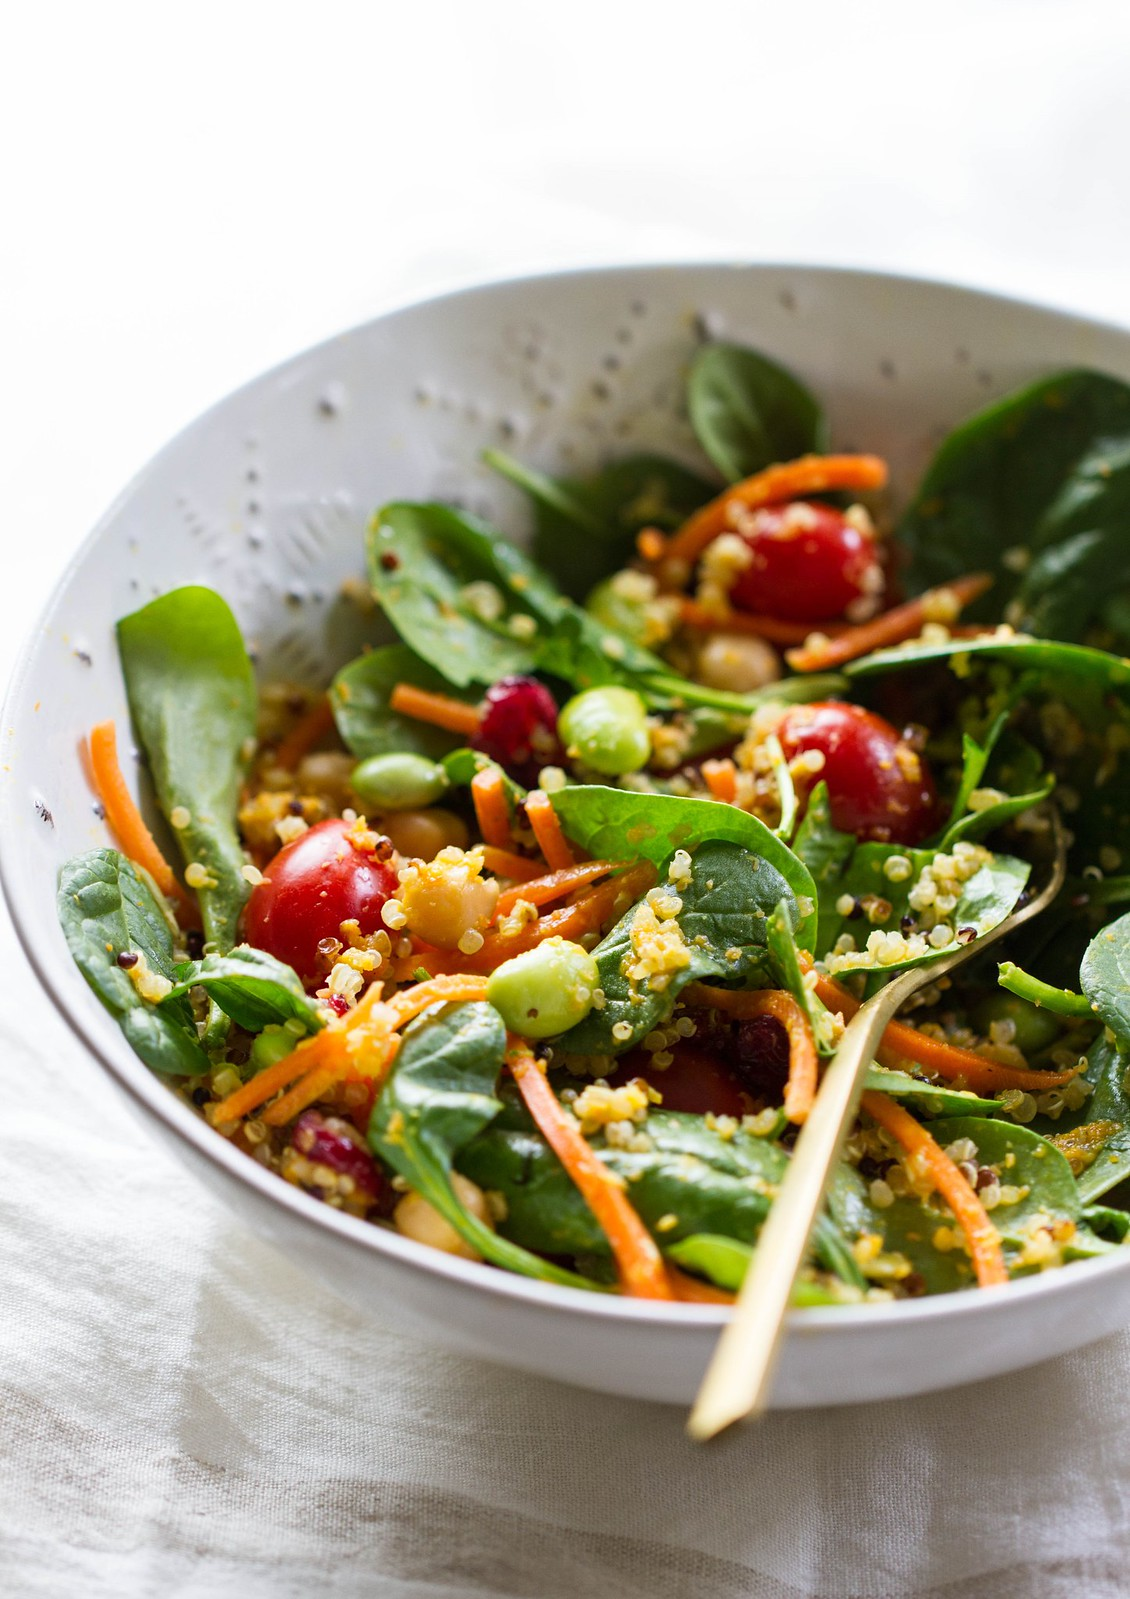 SUPER SPINACH SALAD + CARROT MISO GINGER DRESSING